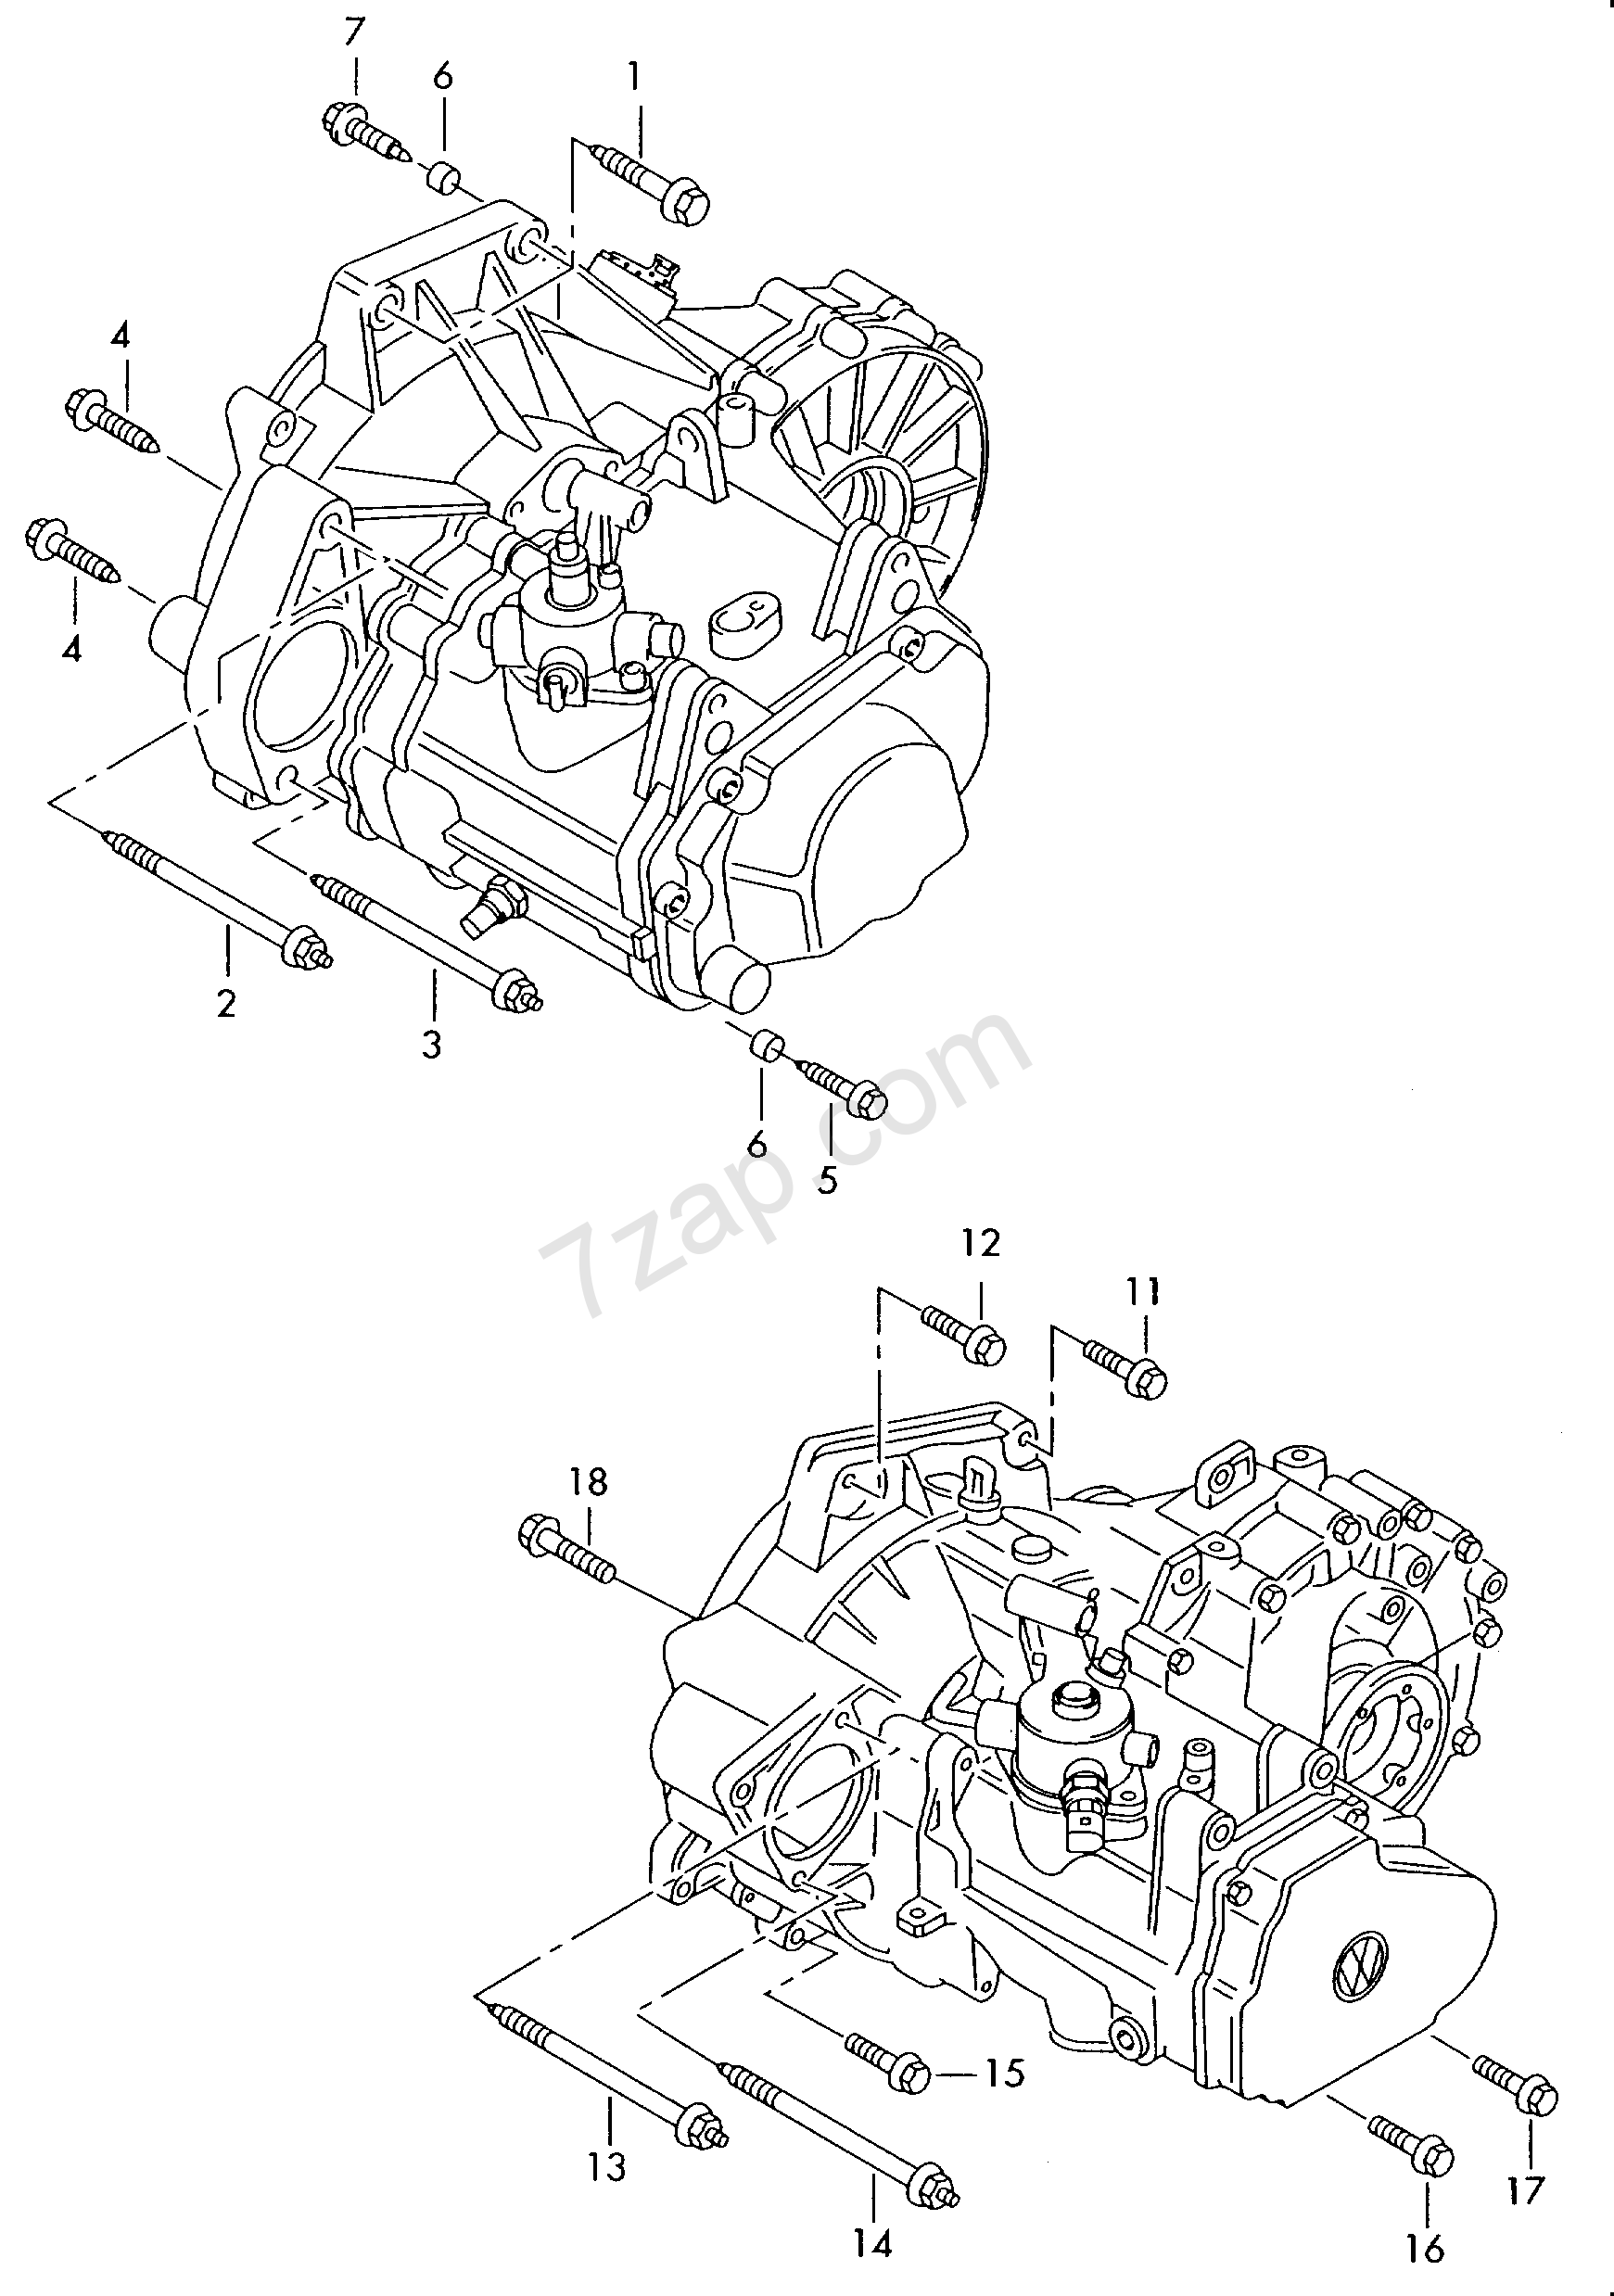 mounting parts for engine and transmission; for 6